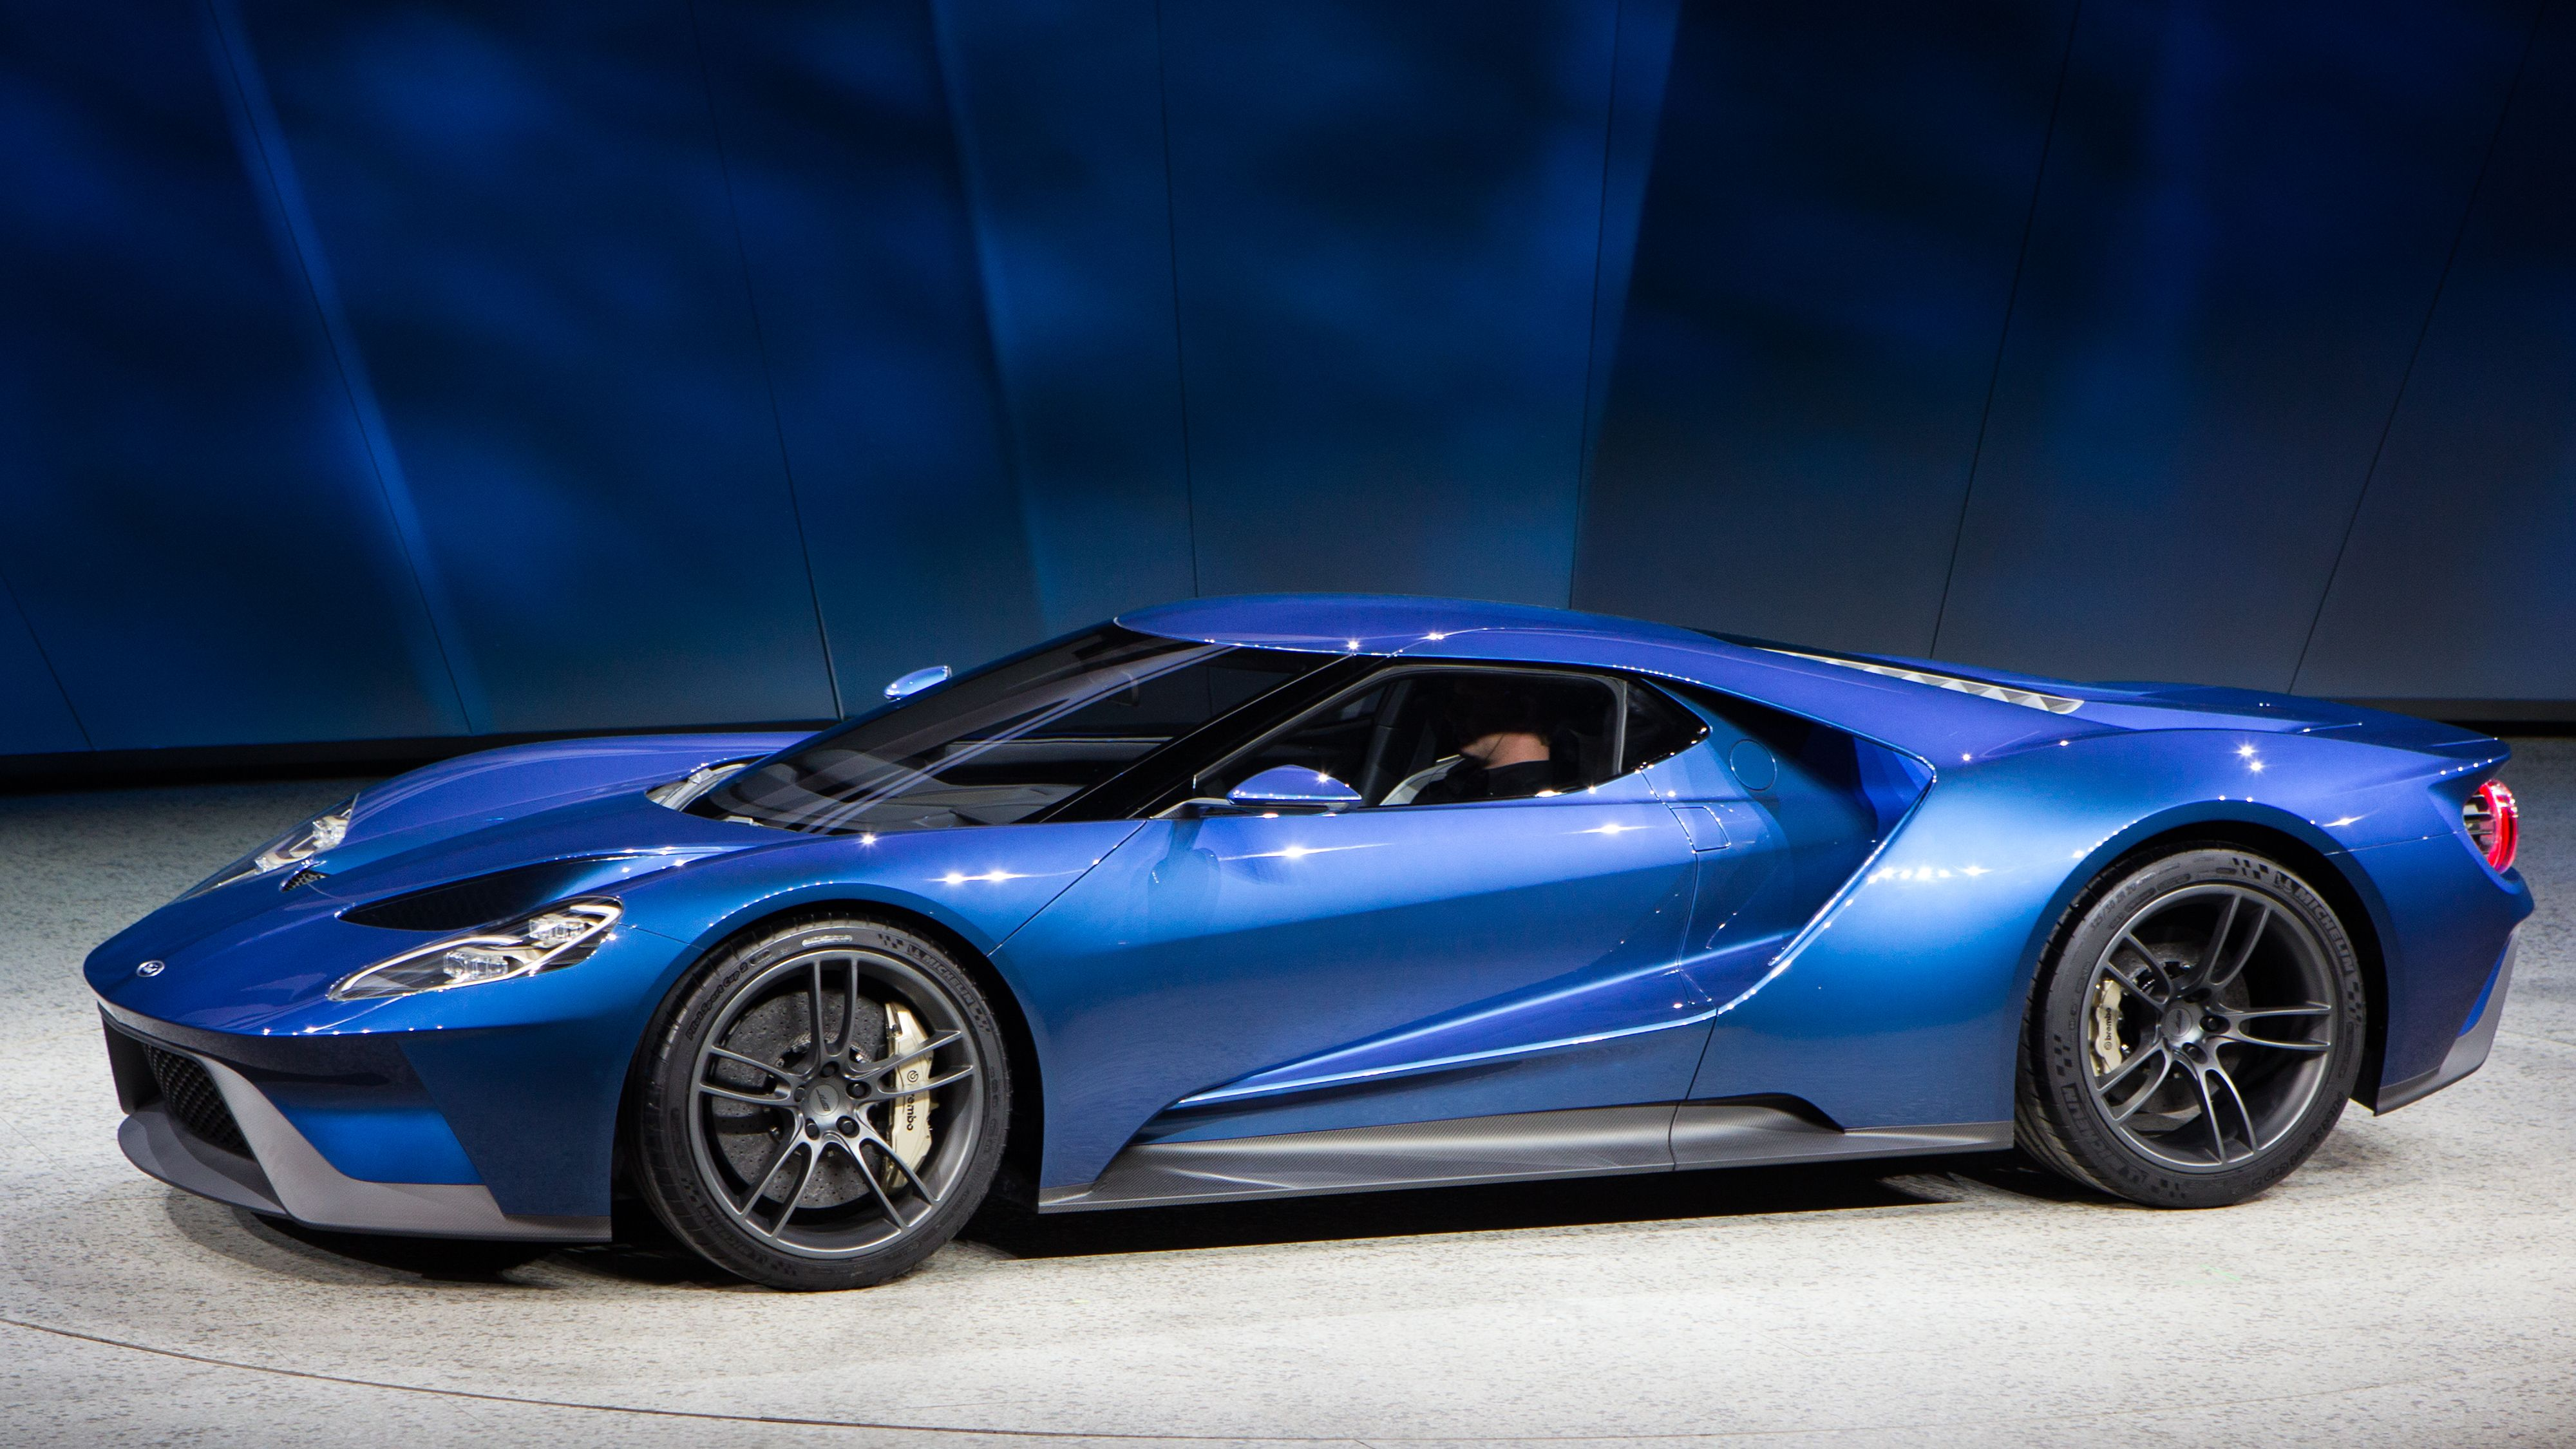 The Ford GT seems to be production-ready